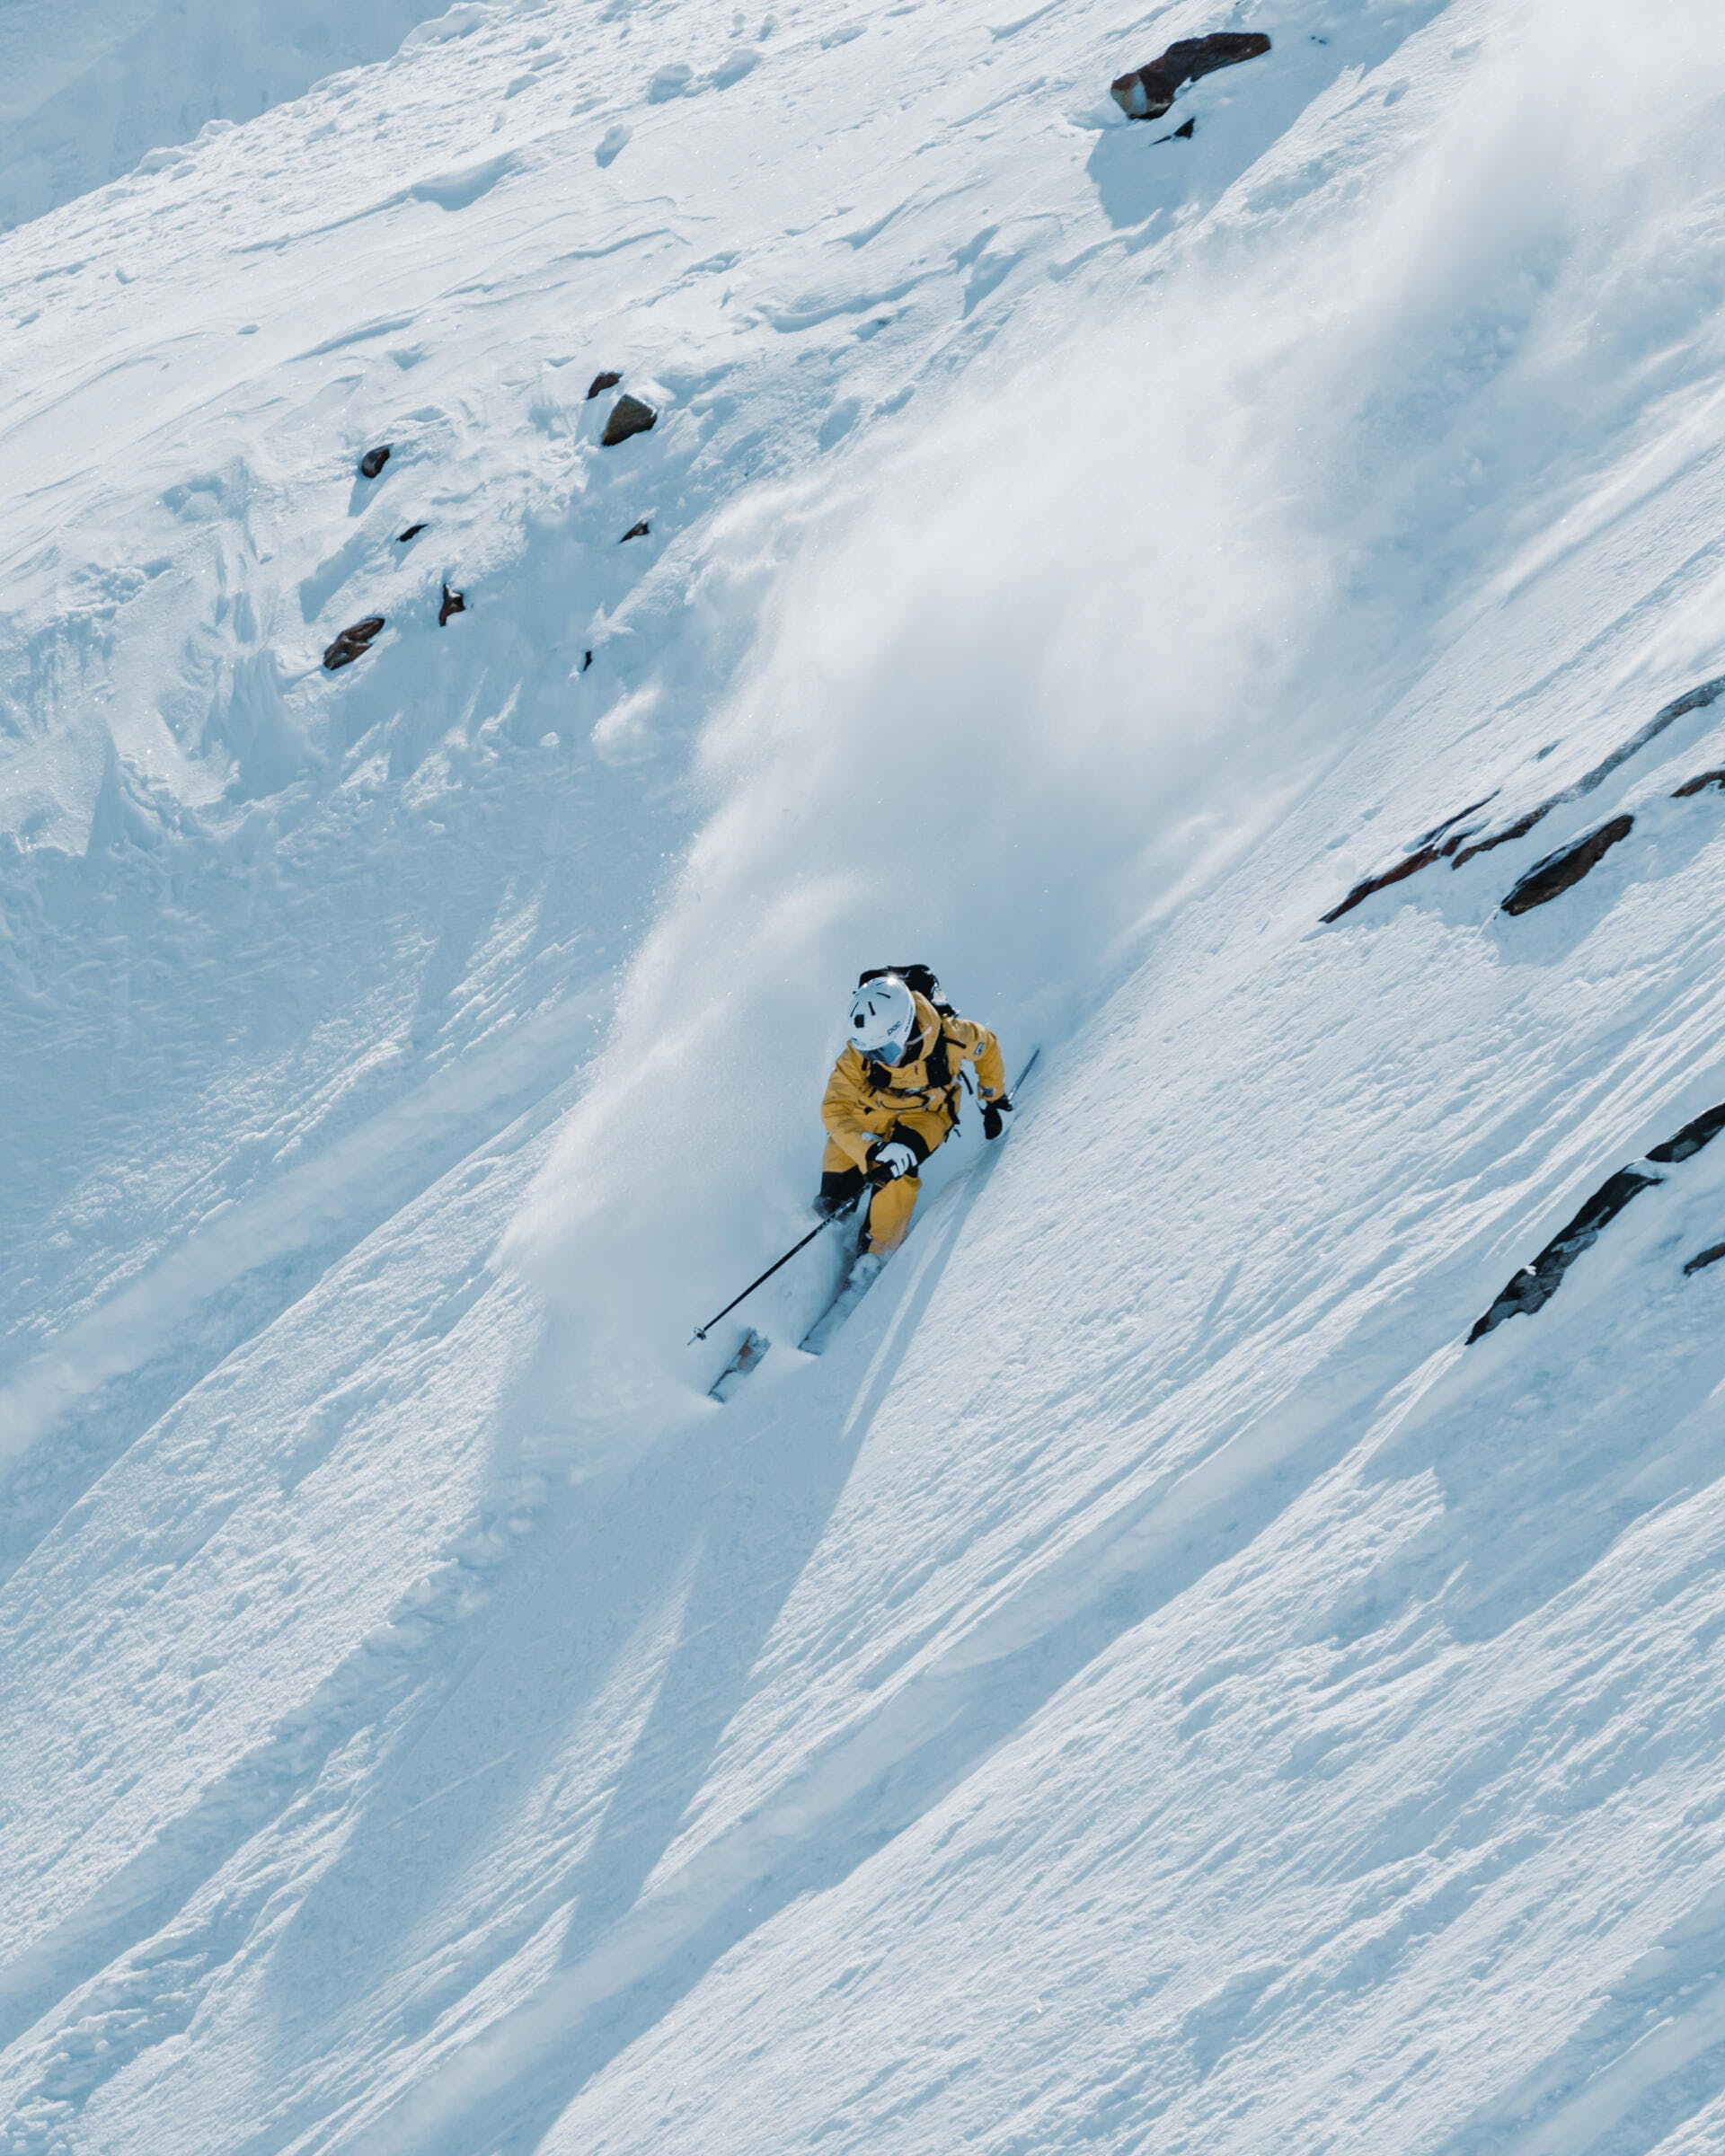 What to pack for heli skiing?